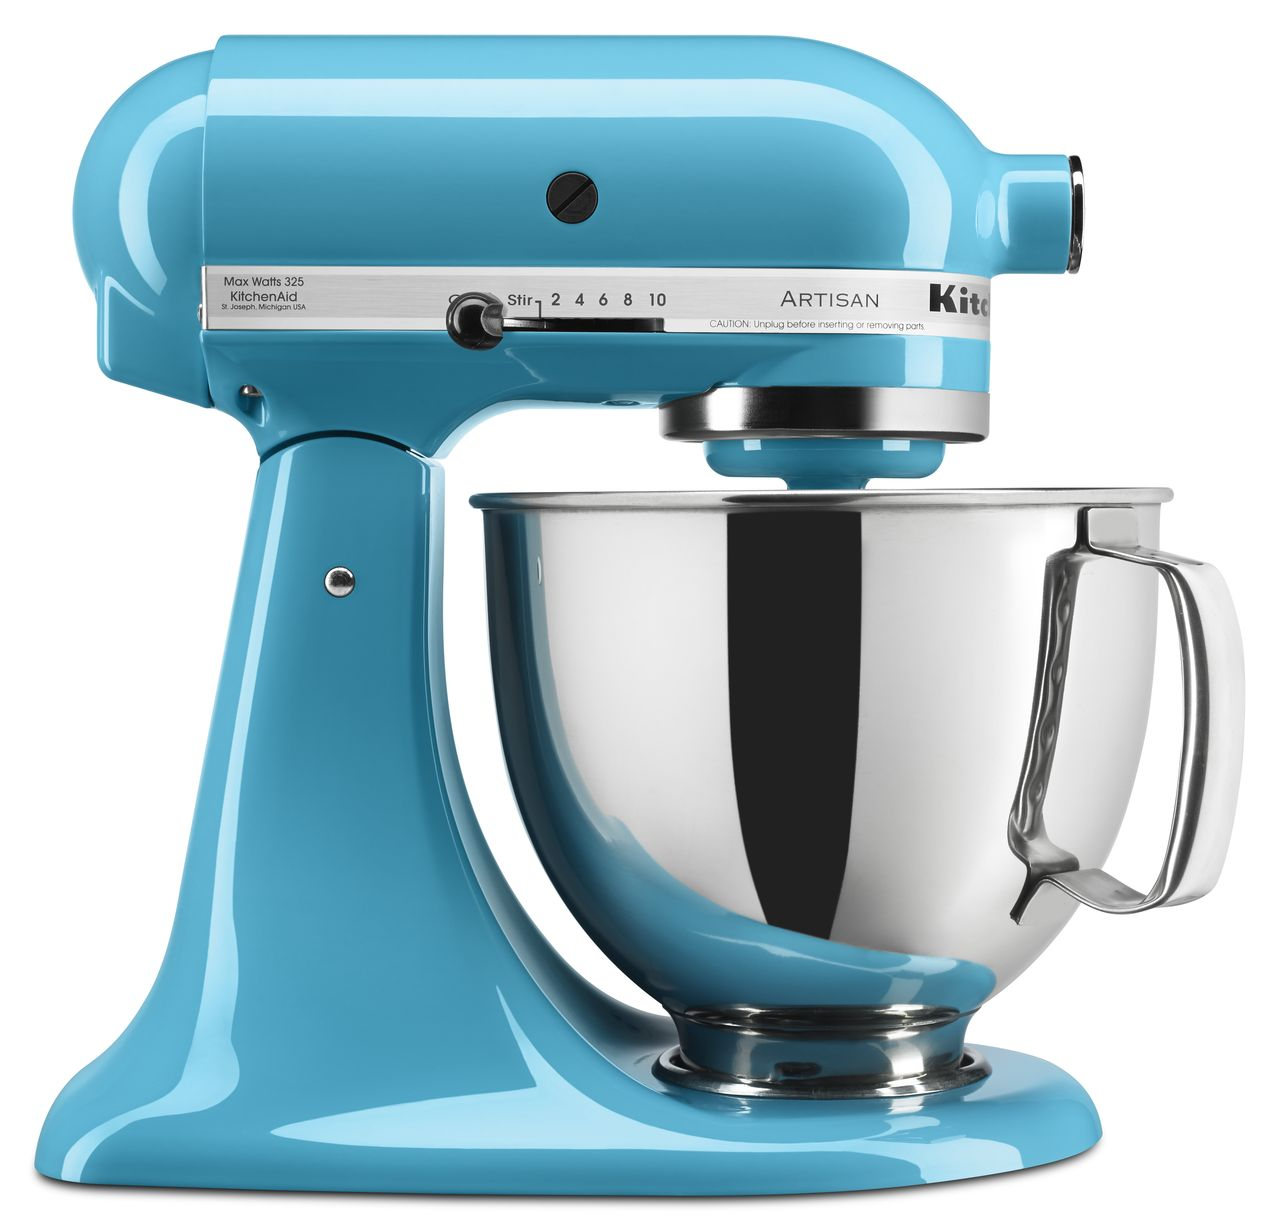 KitchenAid Artisan Series 5 Quart Tilt-Head Stand Mixer, Crystal Blue (KSM150PSCL)